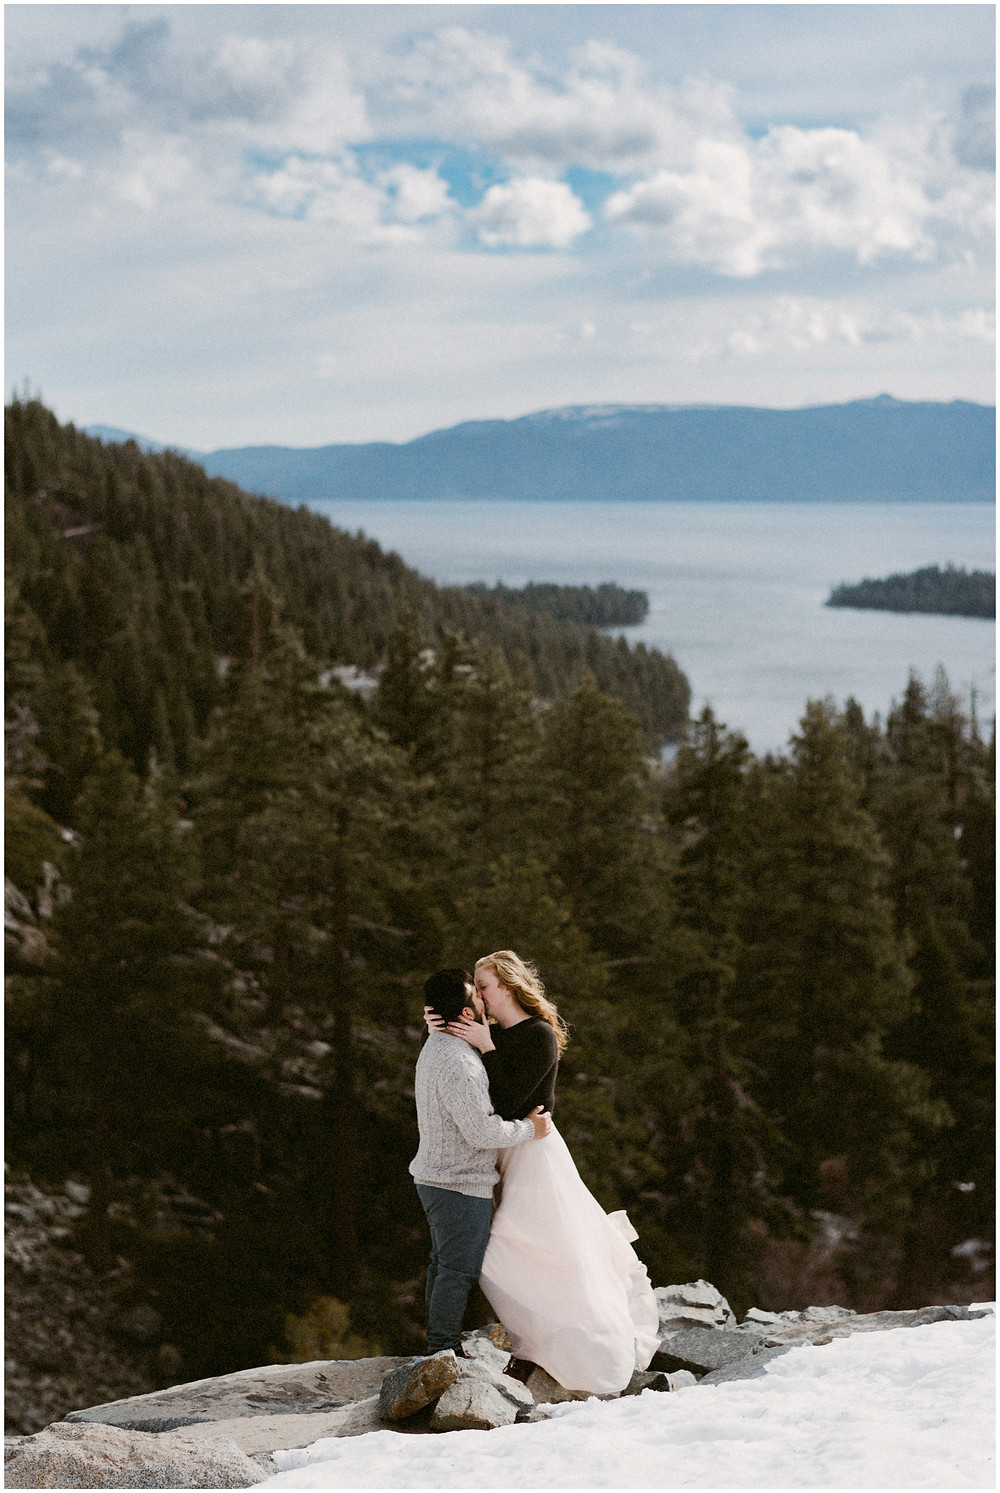 Emerald Bay, Lake Tahoe wedding photographer